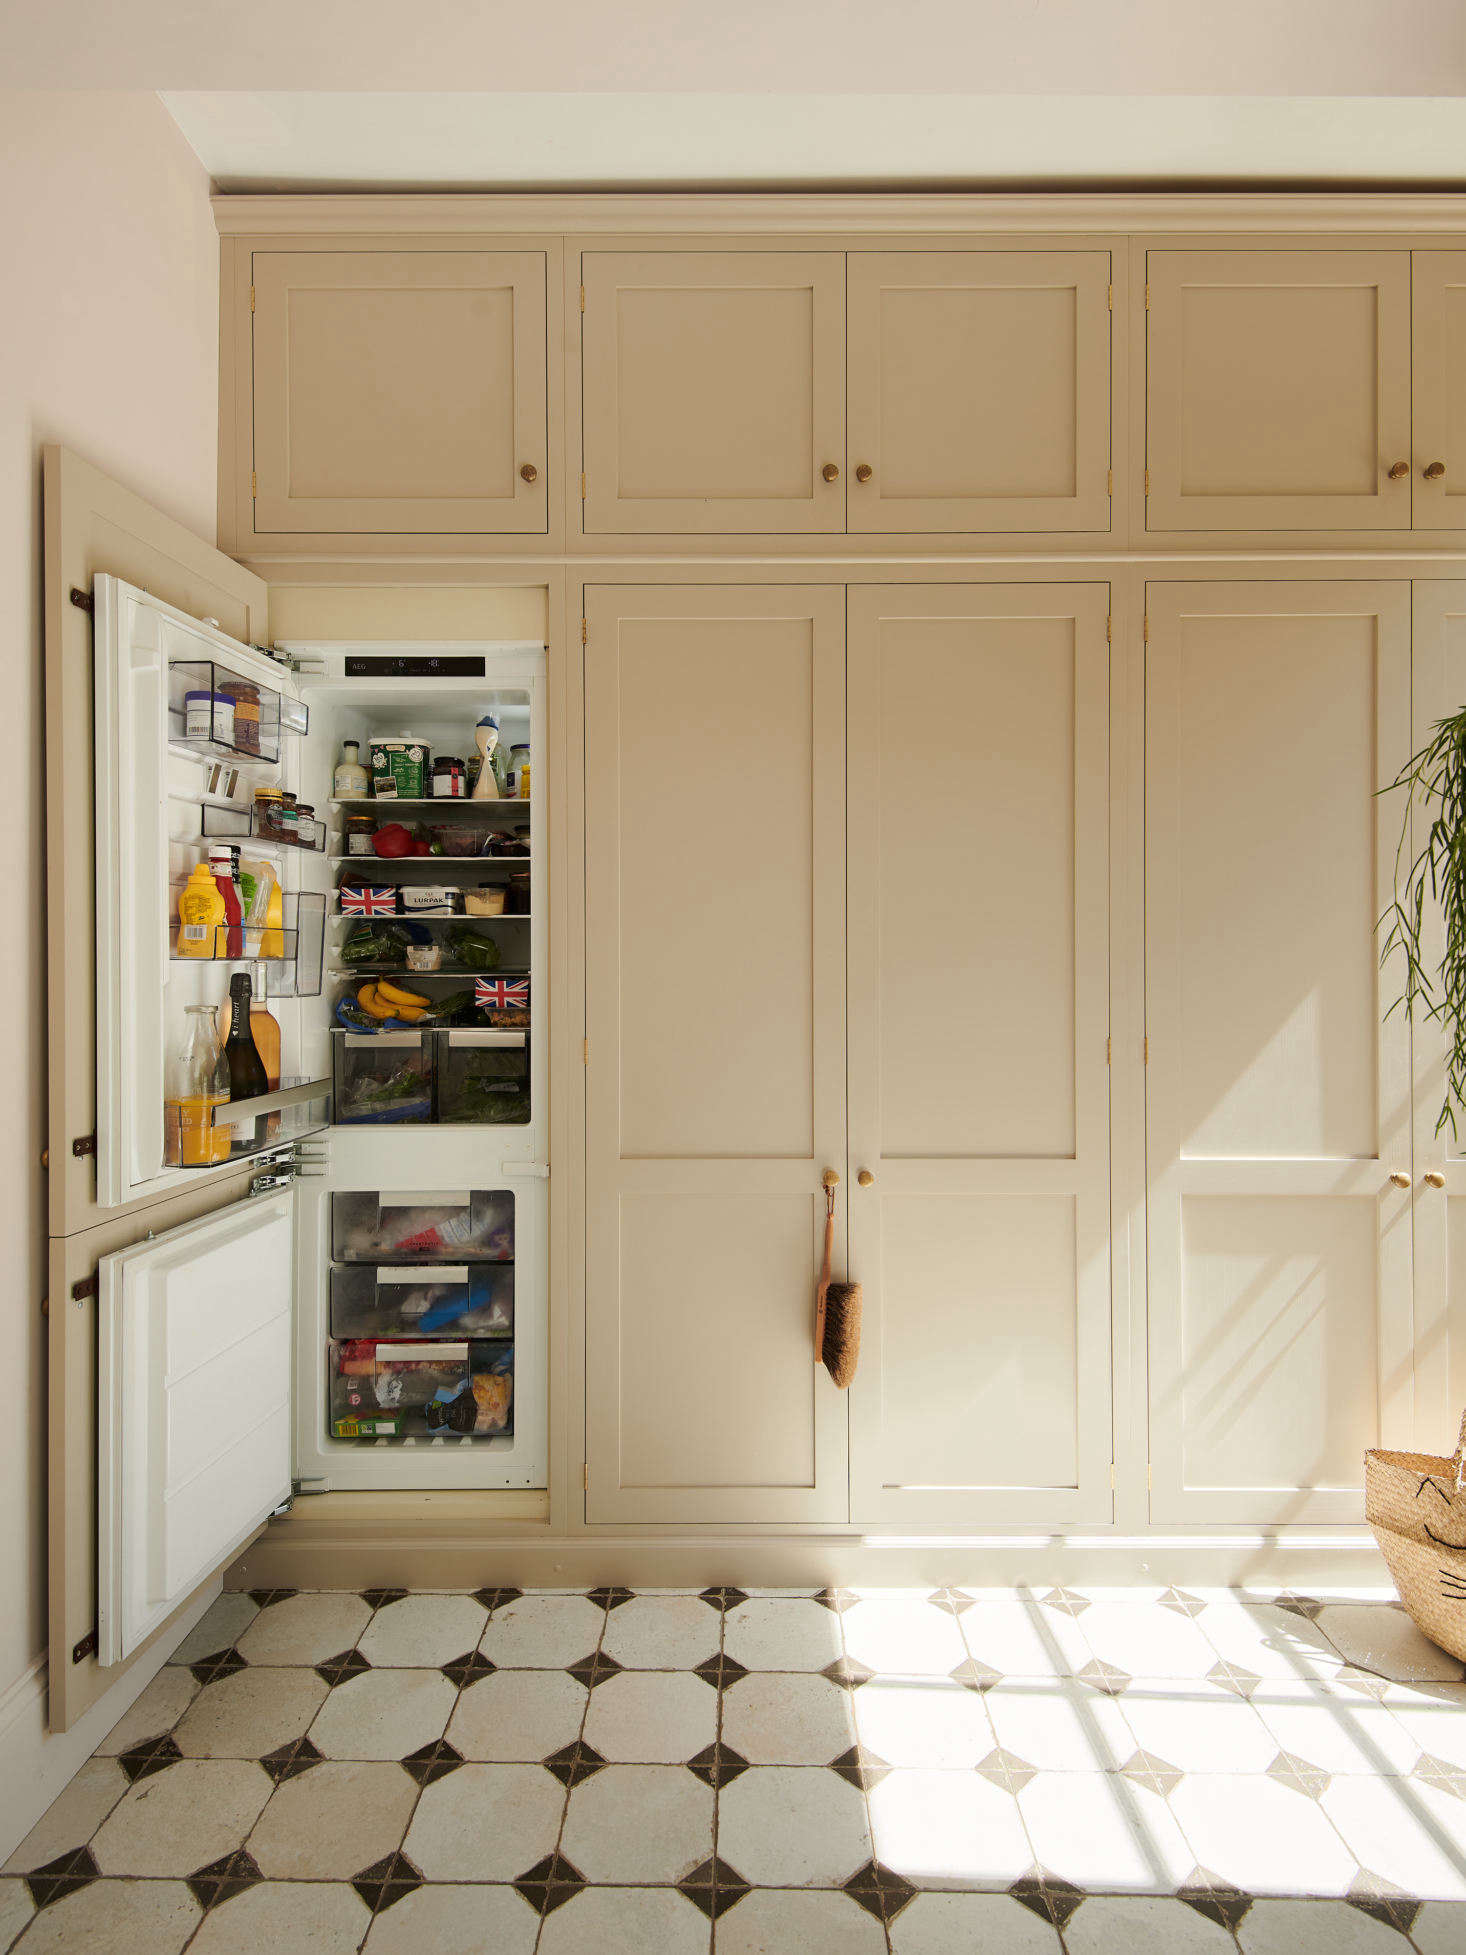 Just off the main kitchen area is a wall of cabinets, painted in deVOL&#8